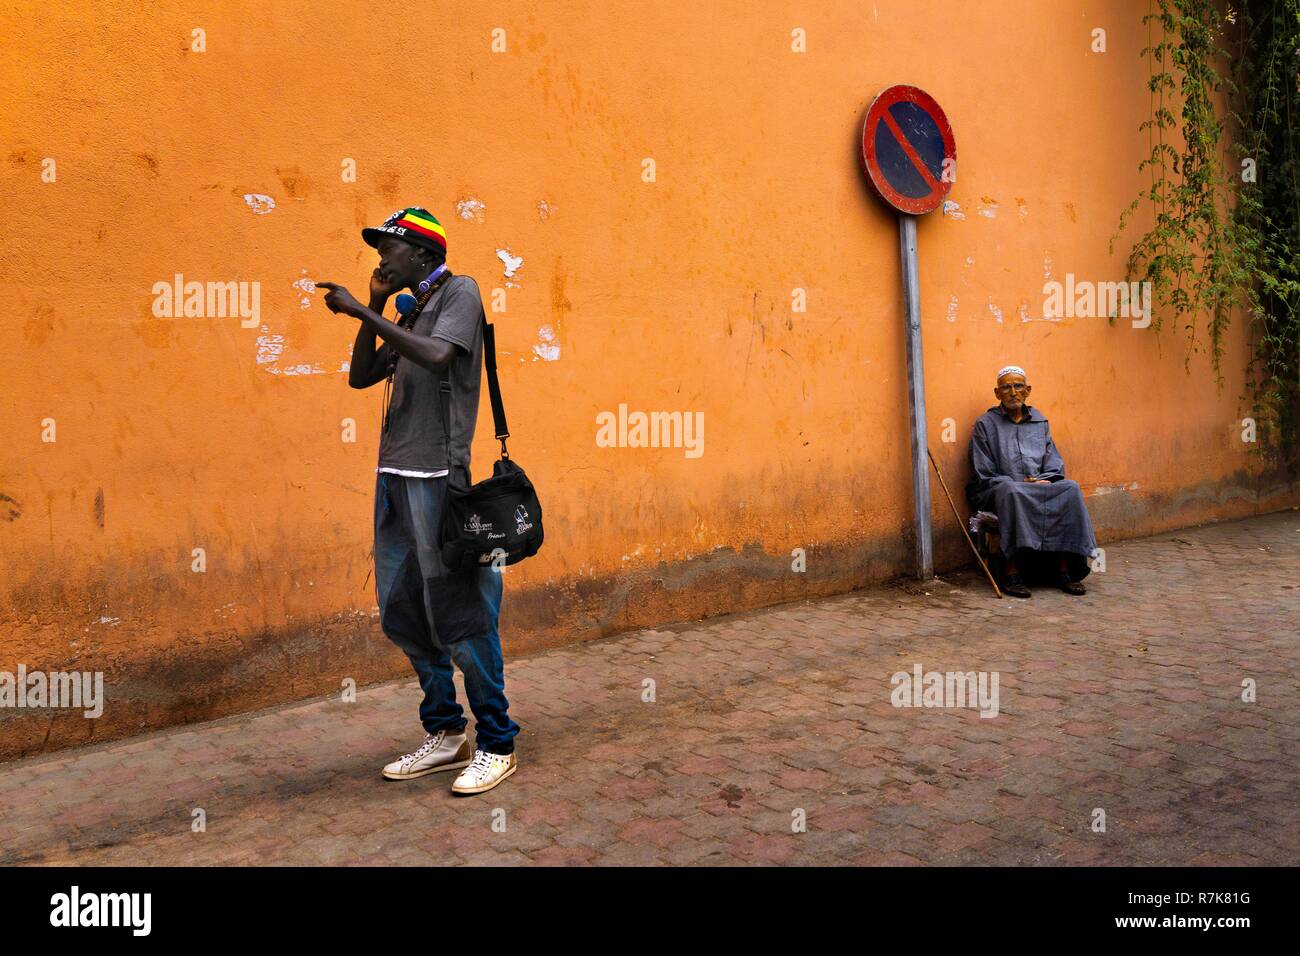 Morocco, Marrakech, a student from sub-Saharan Africa and a Moroccan in gandura - Stock Image